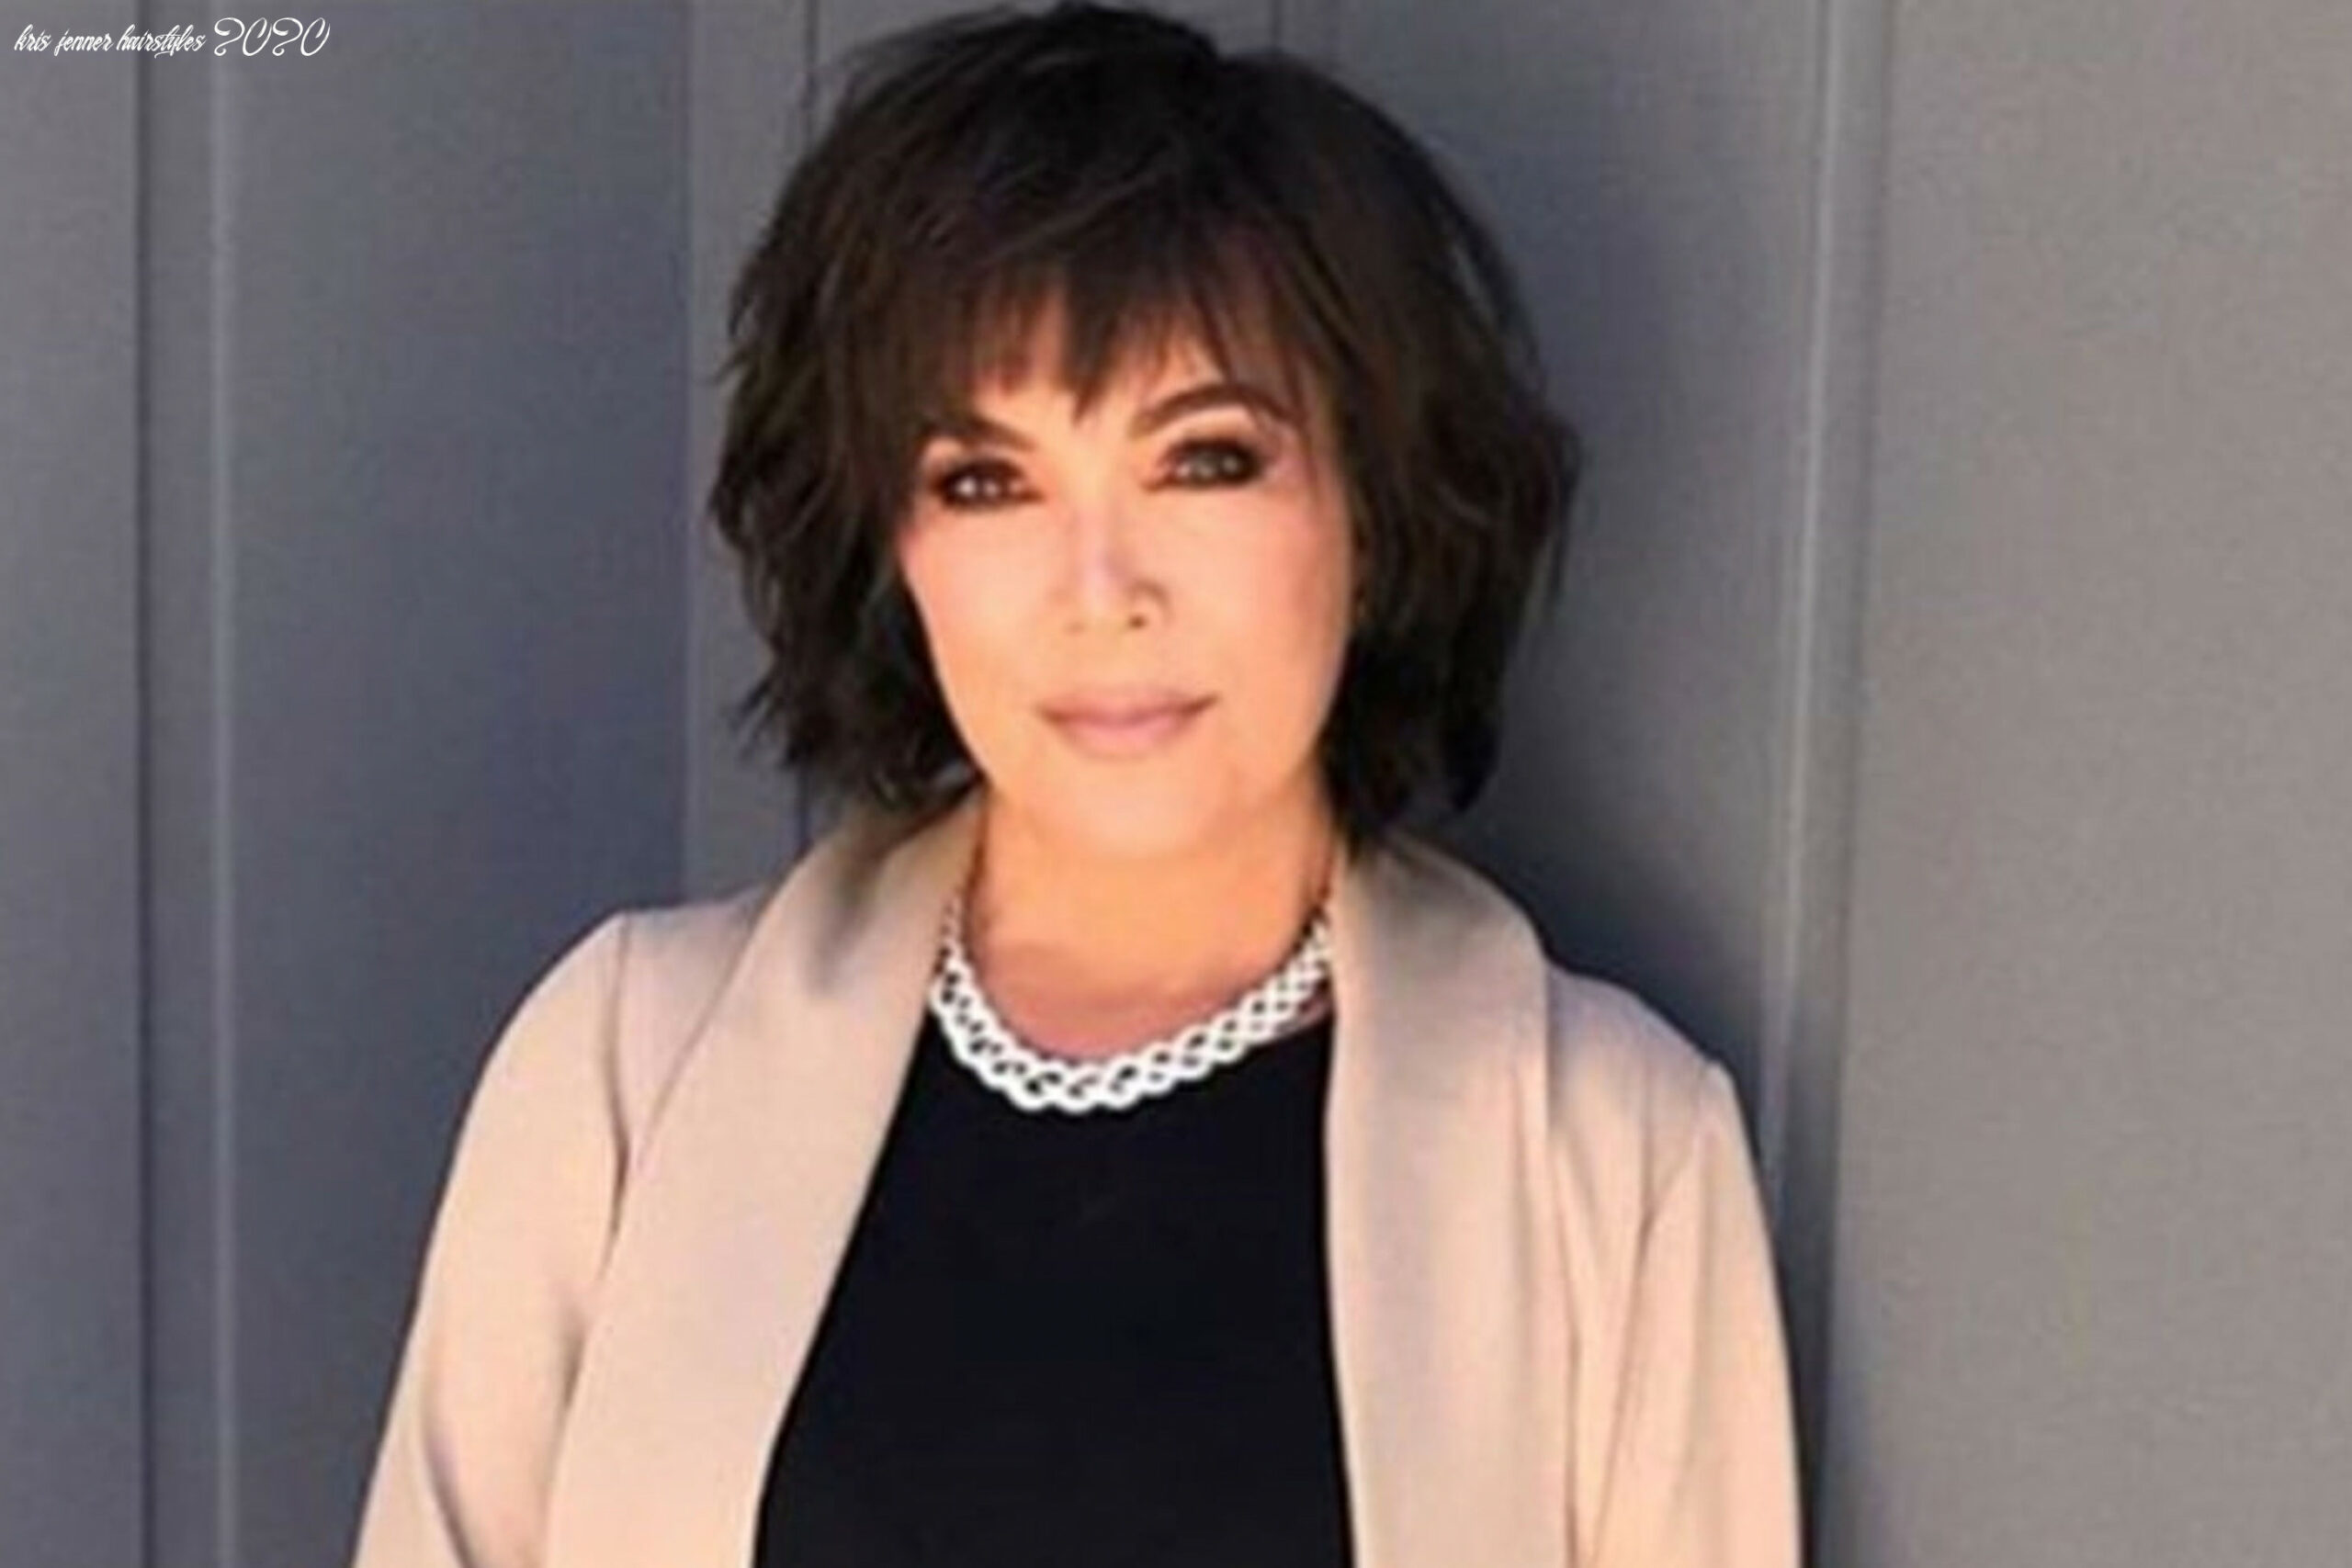 Kris Jenner's New Textured Bob Haircut Makes Her Look So Different ...